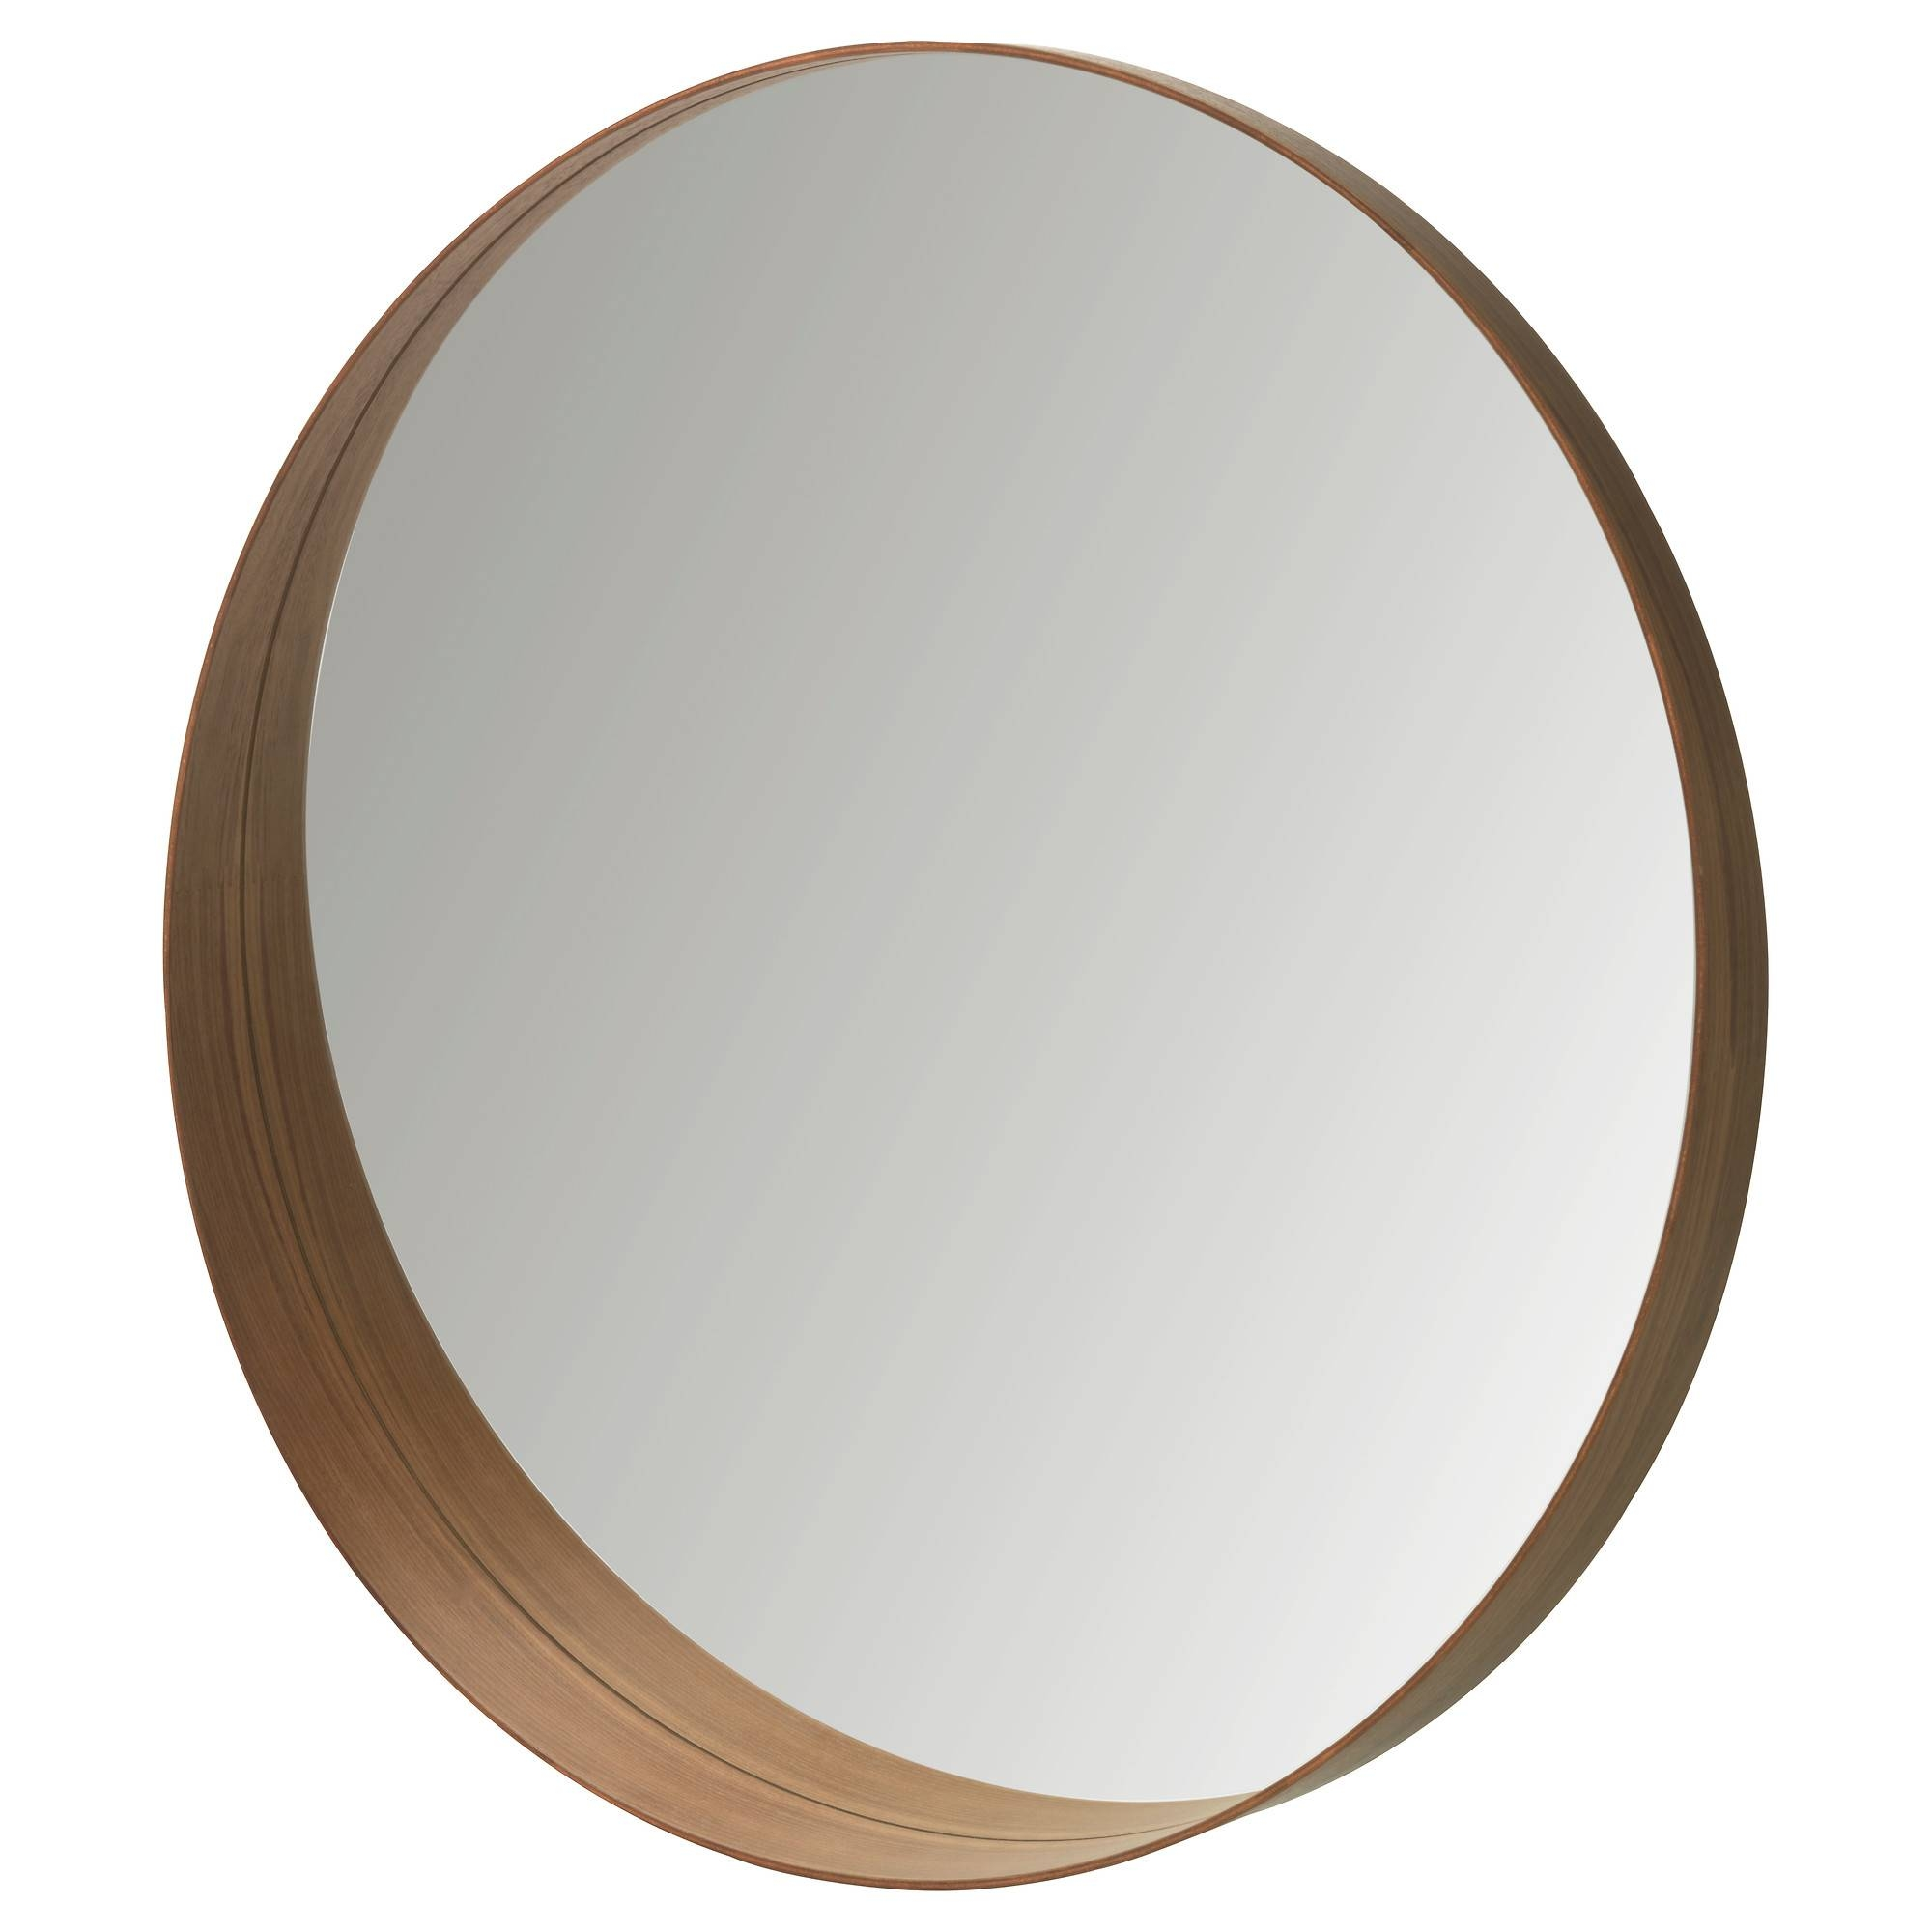 Round Mirrors - Circular & Oval Mirrors - Ikea with regard to Round Mirrors (Image 12 of 15)